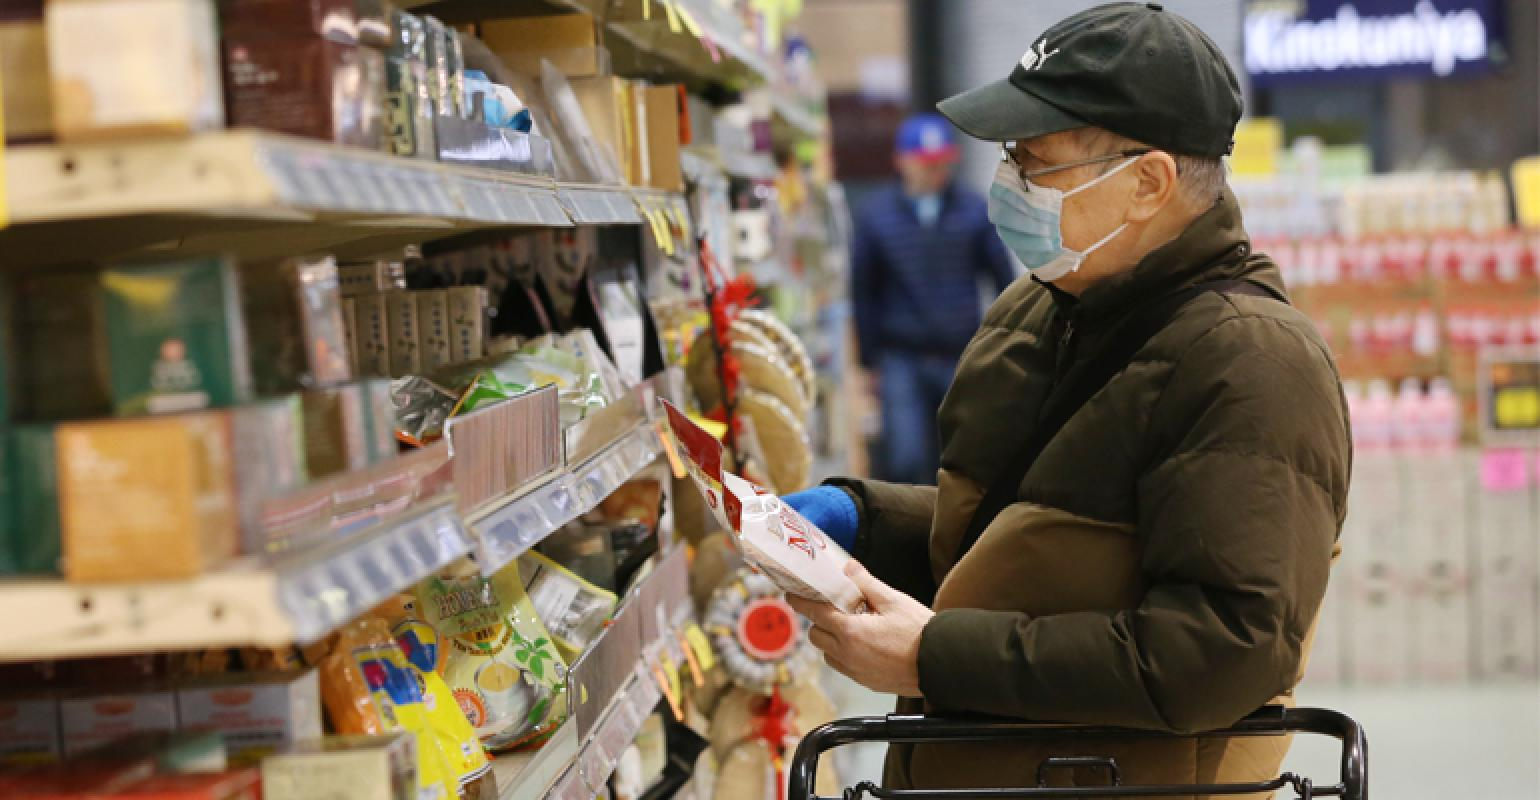 Retailers Designate Special Hours For Those Vulnerable To